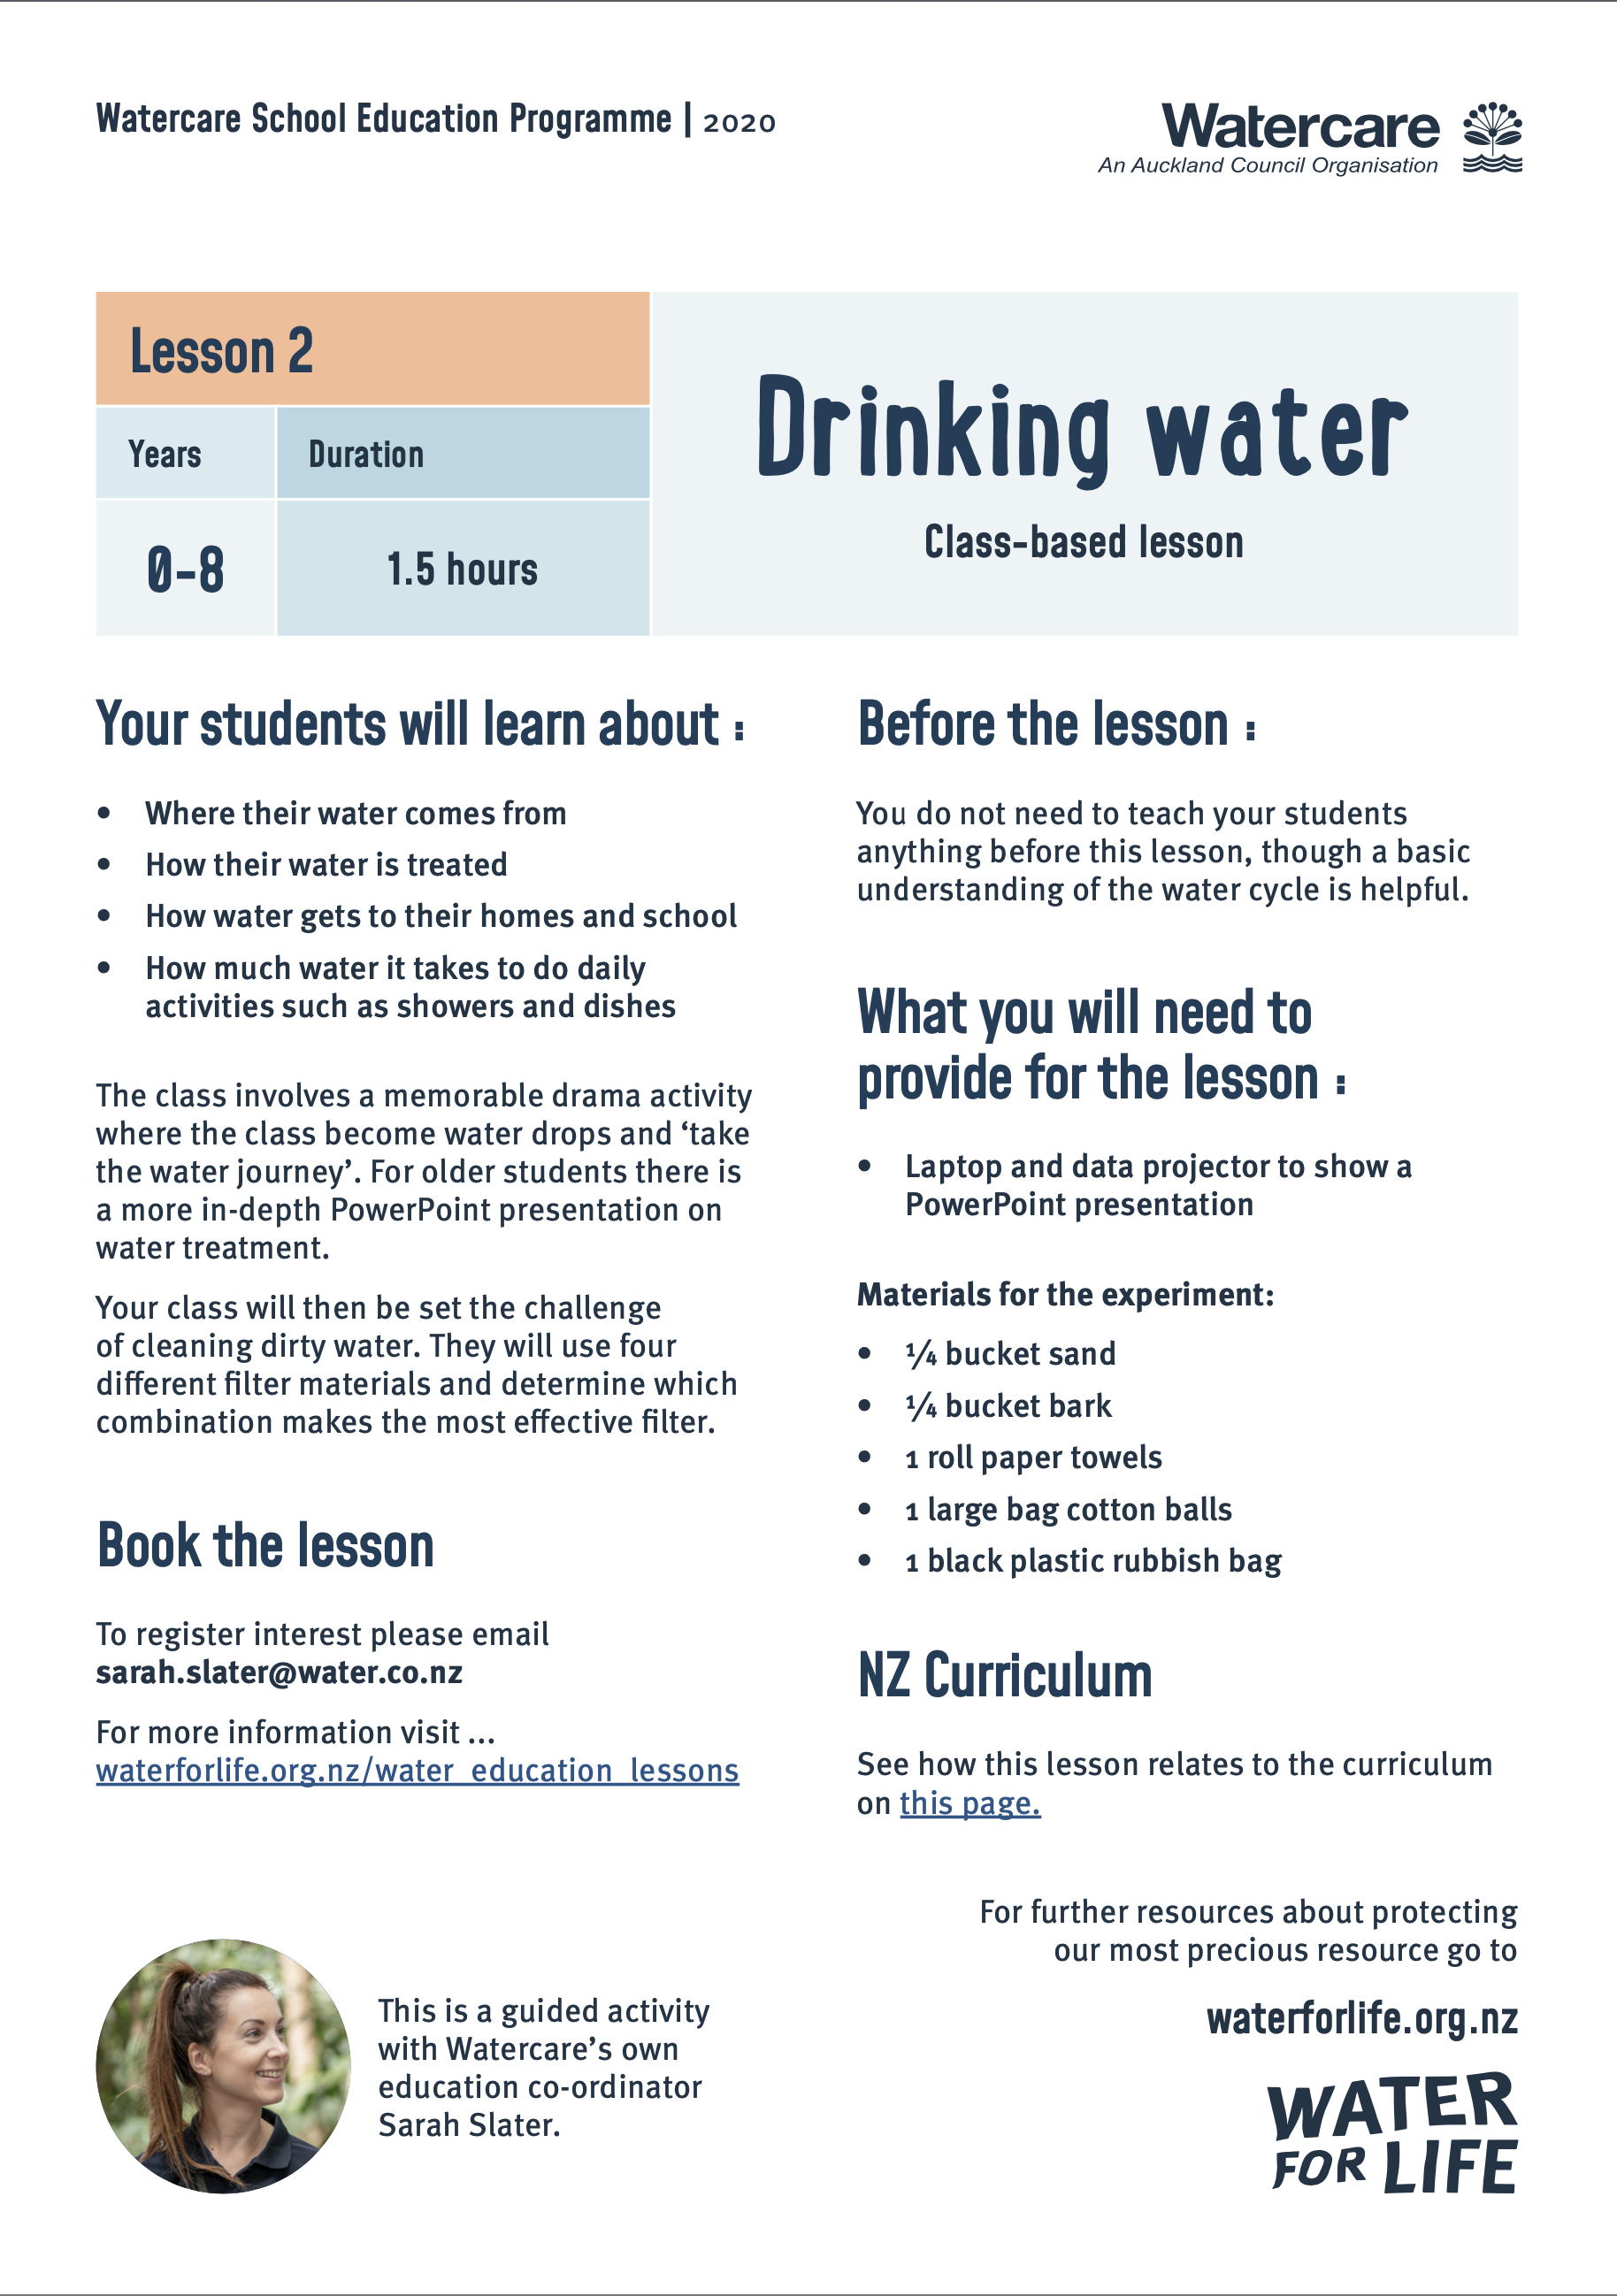 WFL_edu_Lesson2_Drinking Water.pdf